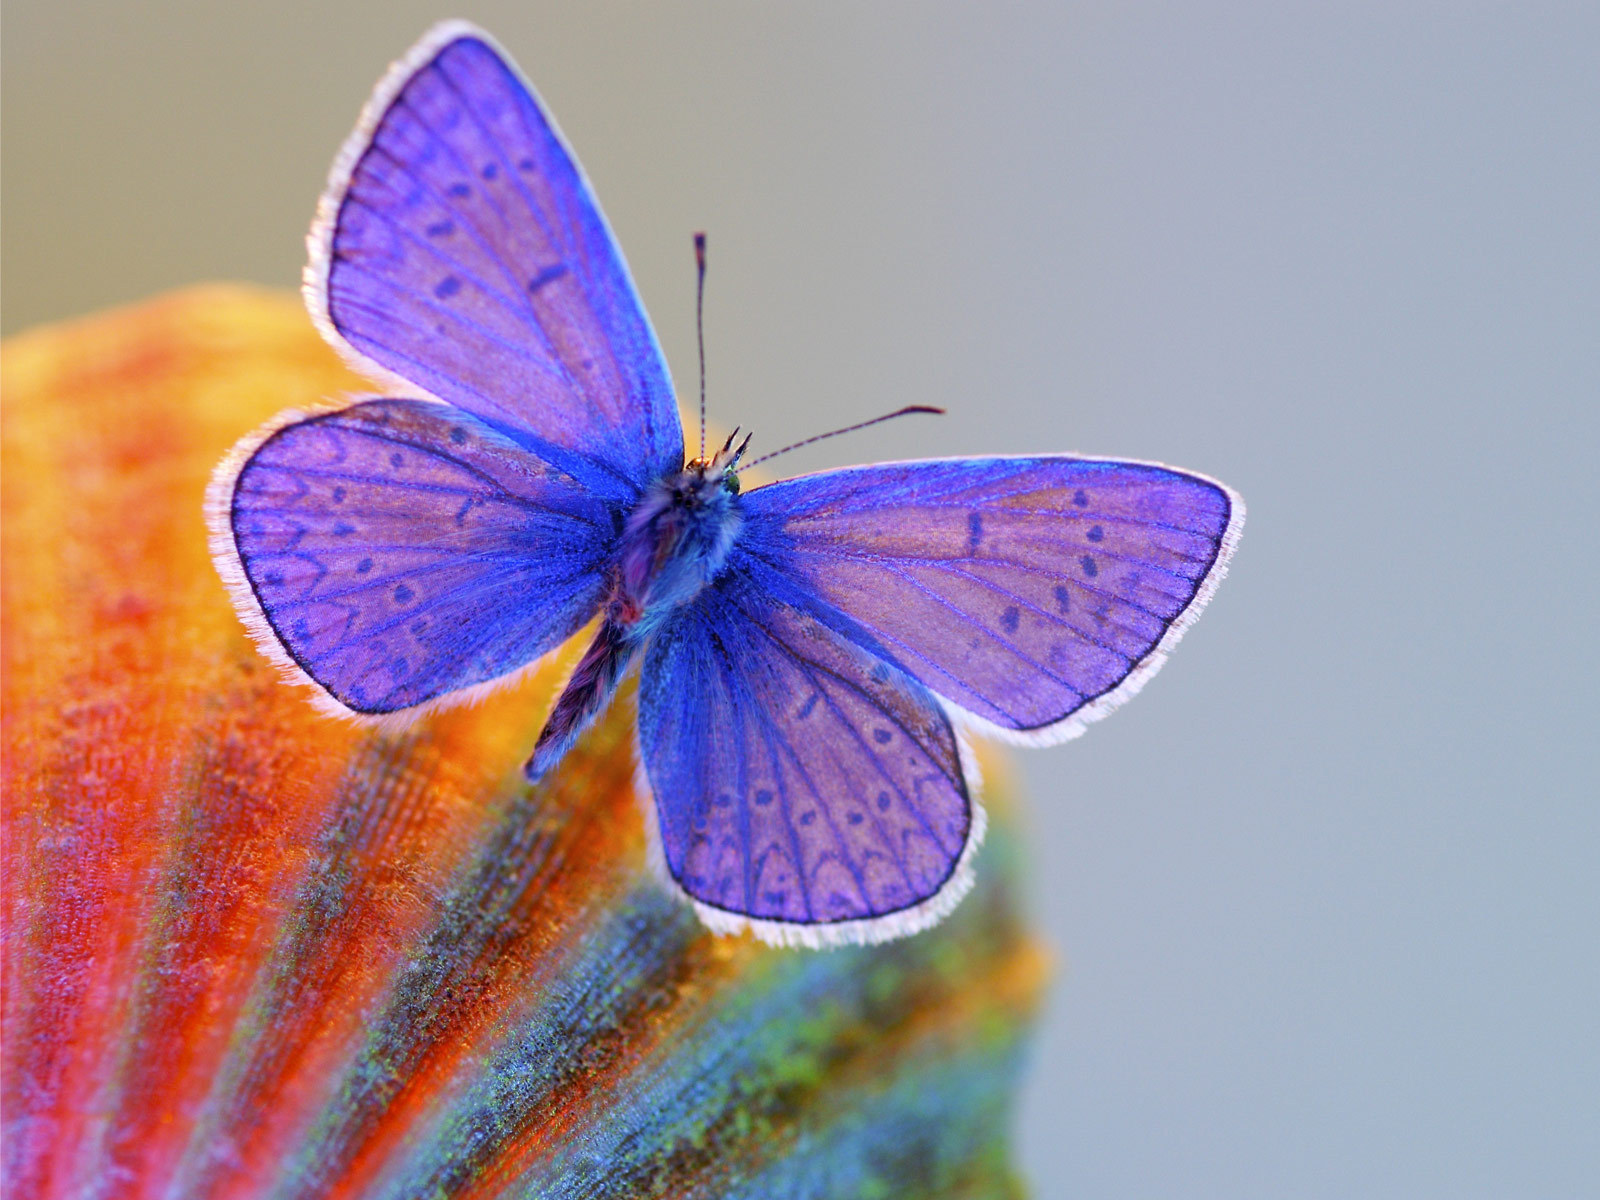 3d Fish Wallpaper For Mobile Wnp Wallpapers Amp Pictures Beautiful Amp Colorful Butterfly